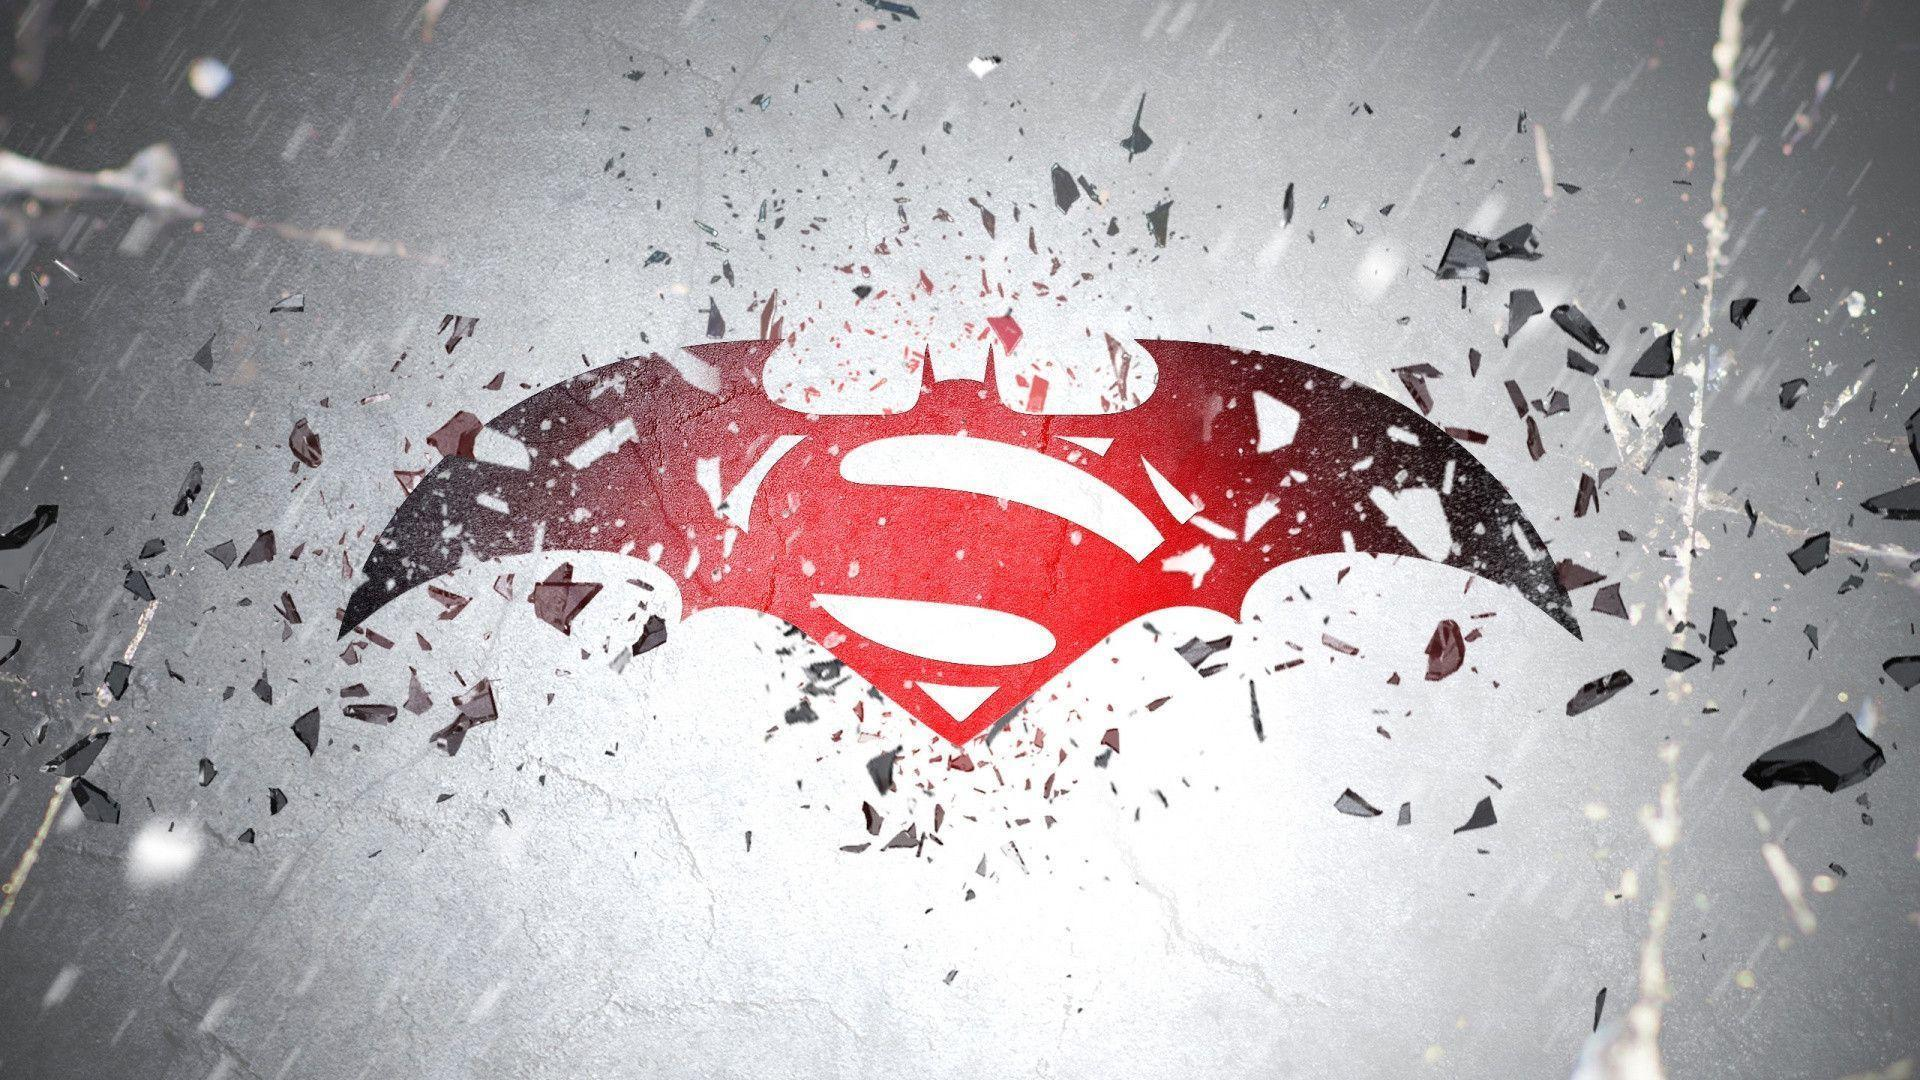 Wallpapers For > Superman Wallpaper Hd 1080p